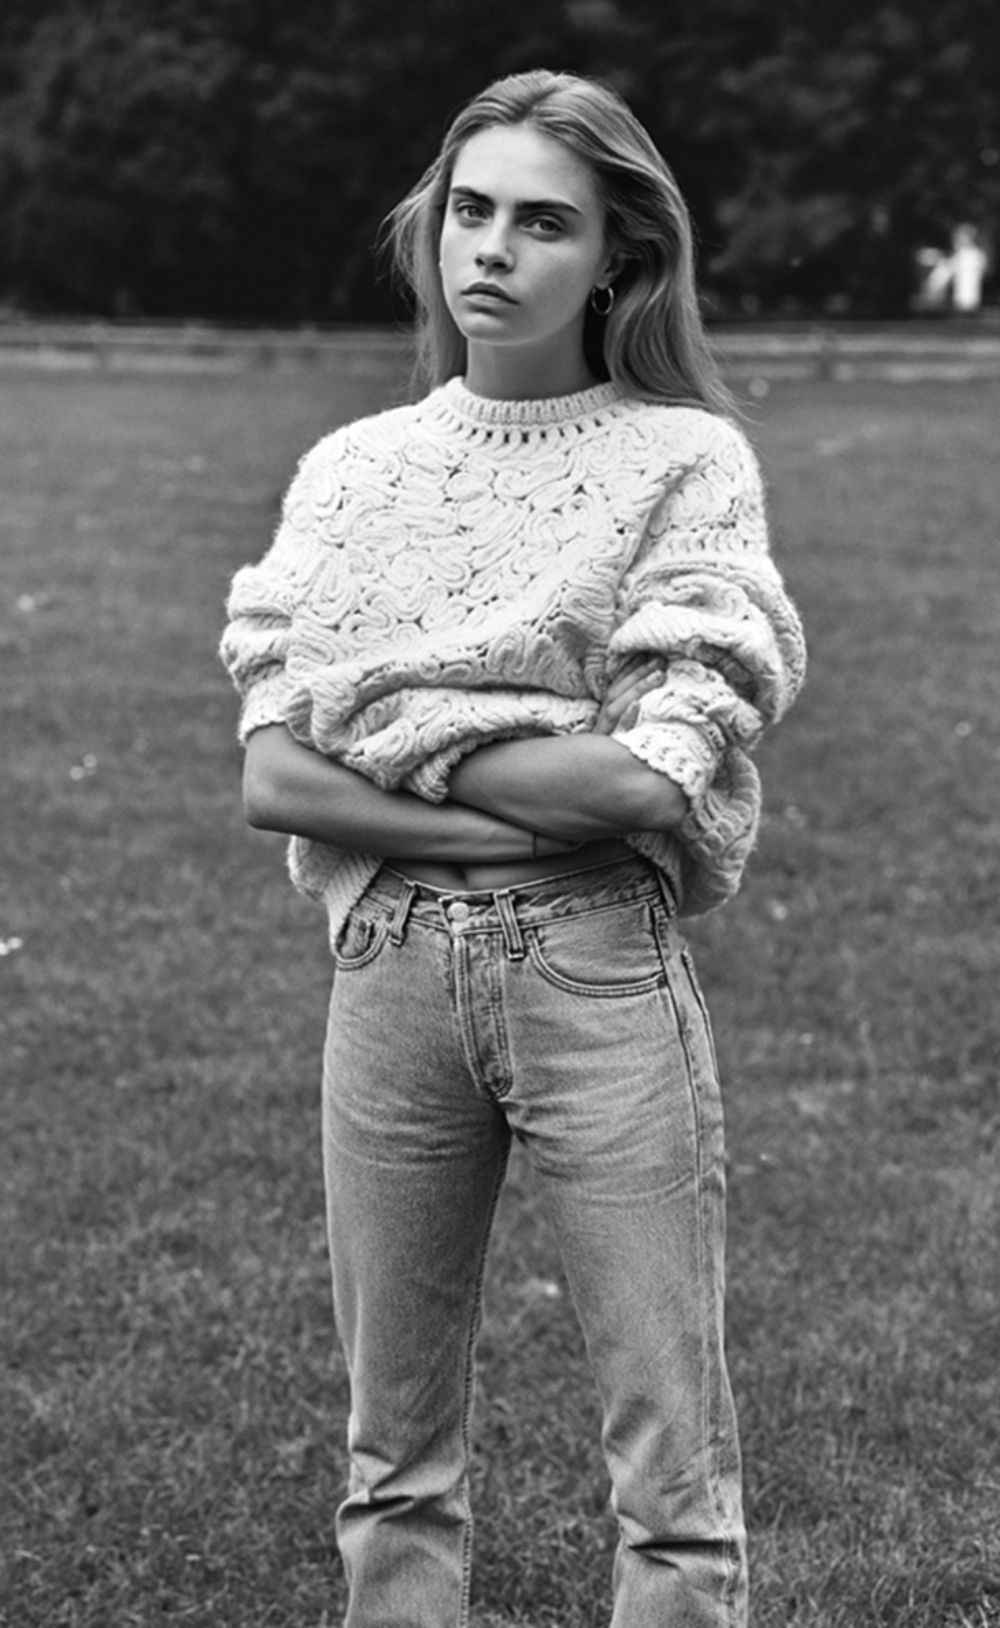 Images: Pinterest · TFS · Stockholm Streetstyle · W Mag · Jean Stories · Vogue.es · Life of Boheme· Bisous Natasha  My latest denim of choice is the mom jeans (or mum jeans for us Aussies).This slightly high-waisted and straight-leg style looks good with both heels or sneakers, as shown above.  Shopmy top picks:  BDG The Mom Jean Levi's Vintage 501 & 505 Jean Topshop Moto Vintage Mom Jeans ASOS Farleigh Slim Mom Jeans MiH Halsy Straight Leg Jeans     URBAN OUTFITTERS     URBAN OUTFITTERS…